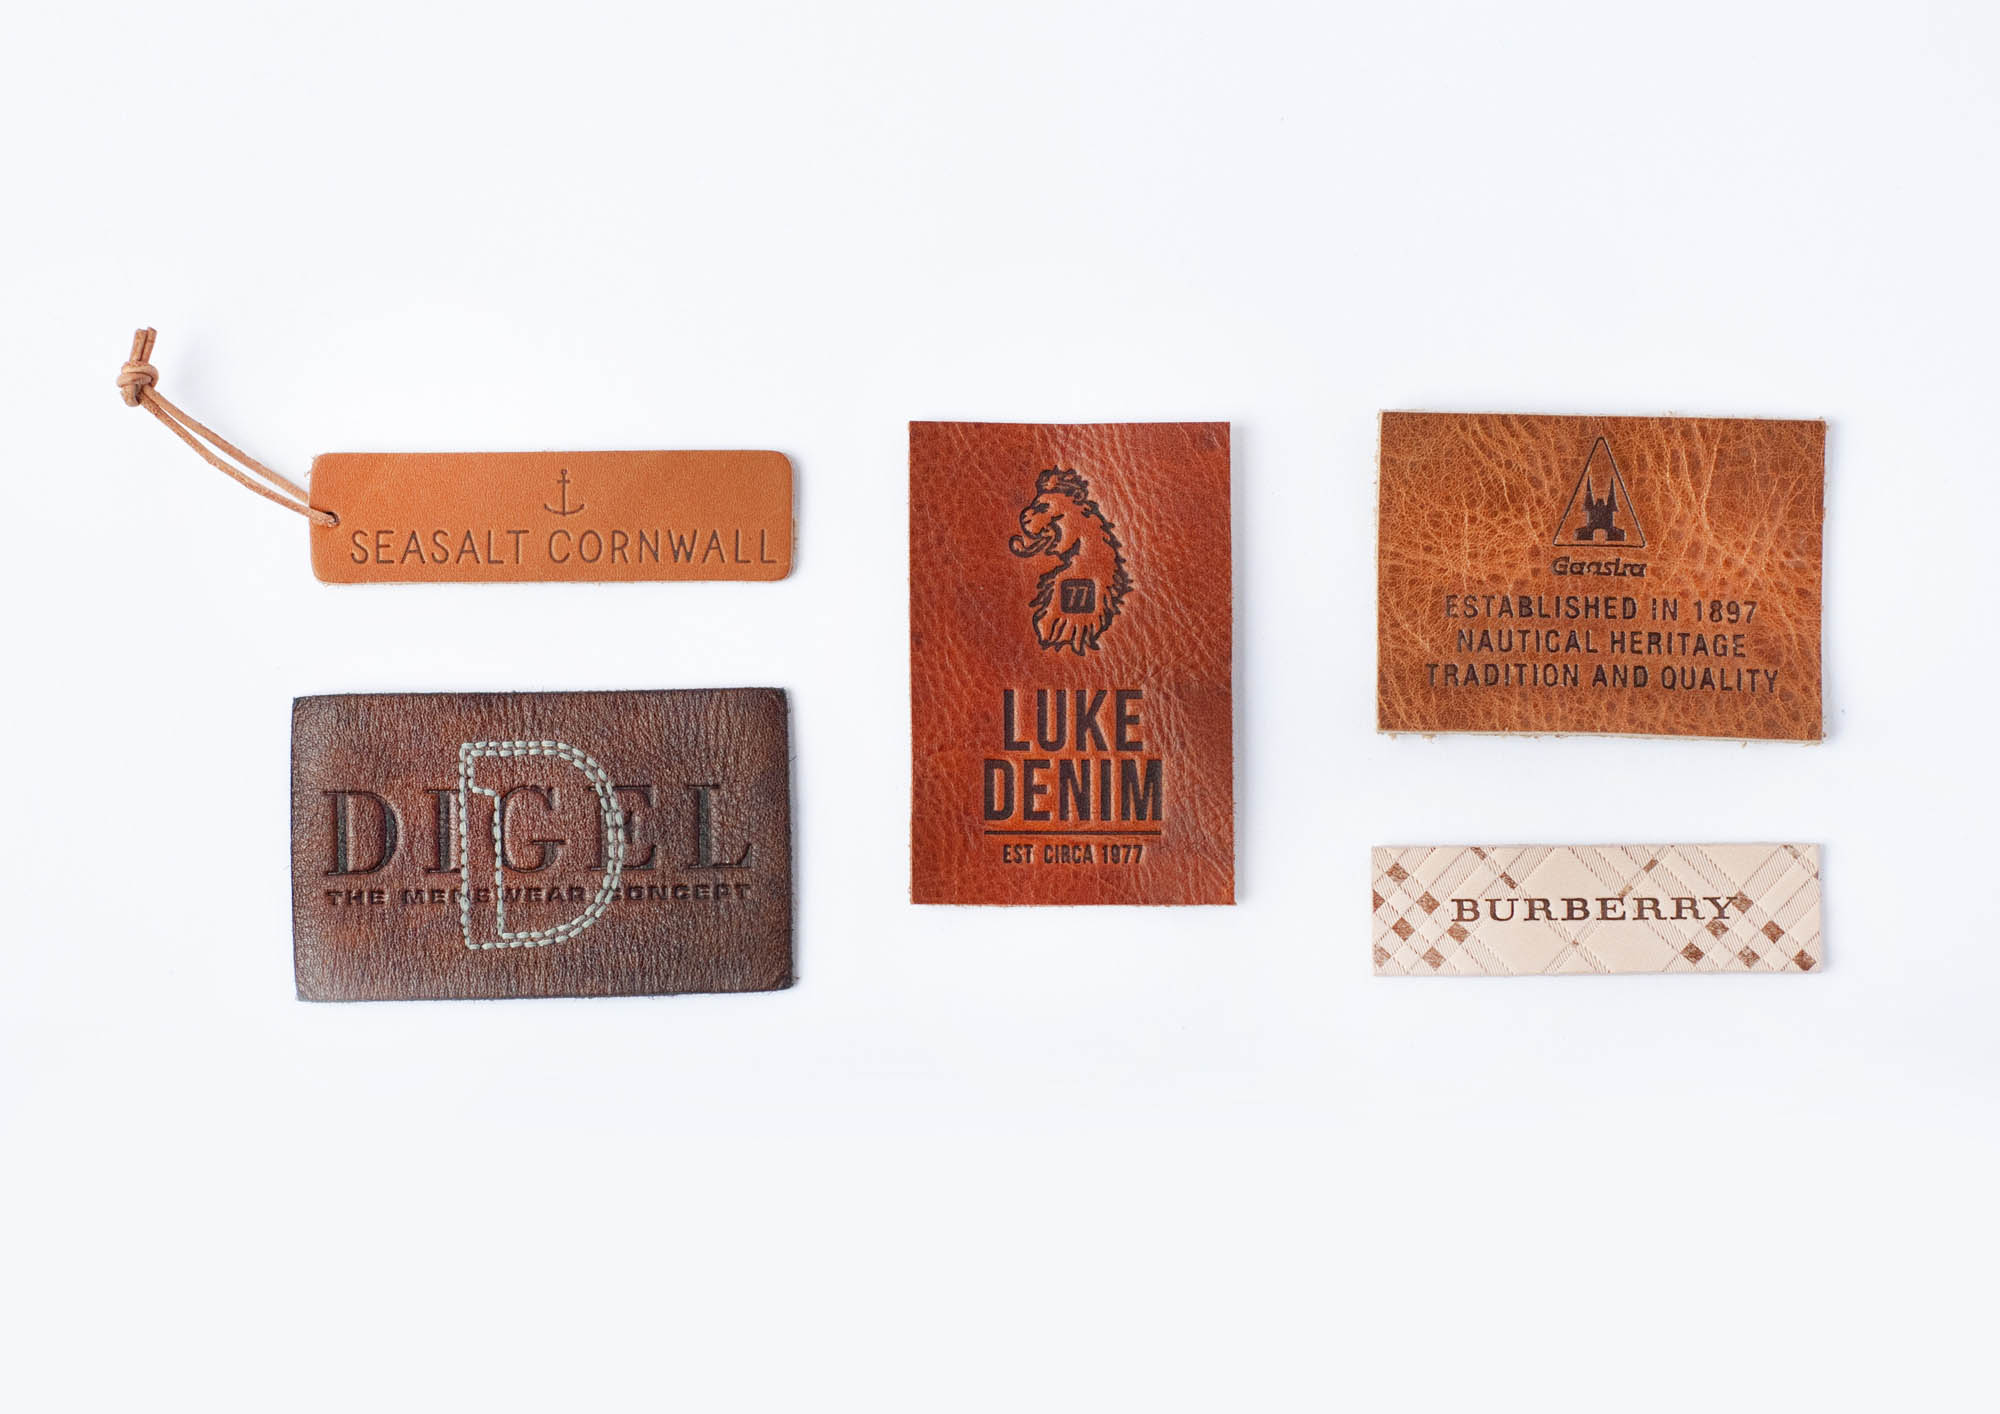 Leather Patch - A Product Manager's Best Way to Stay Ahead